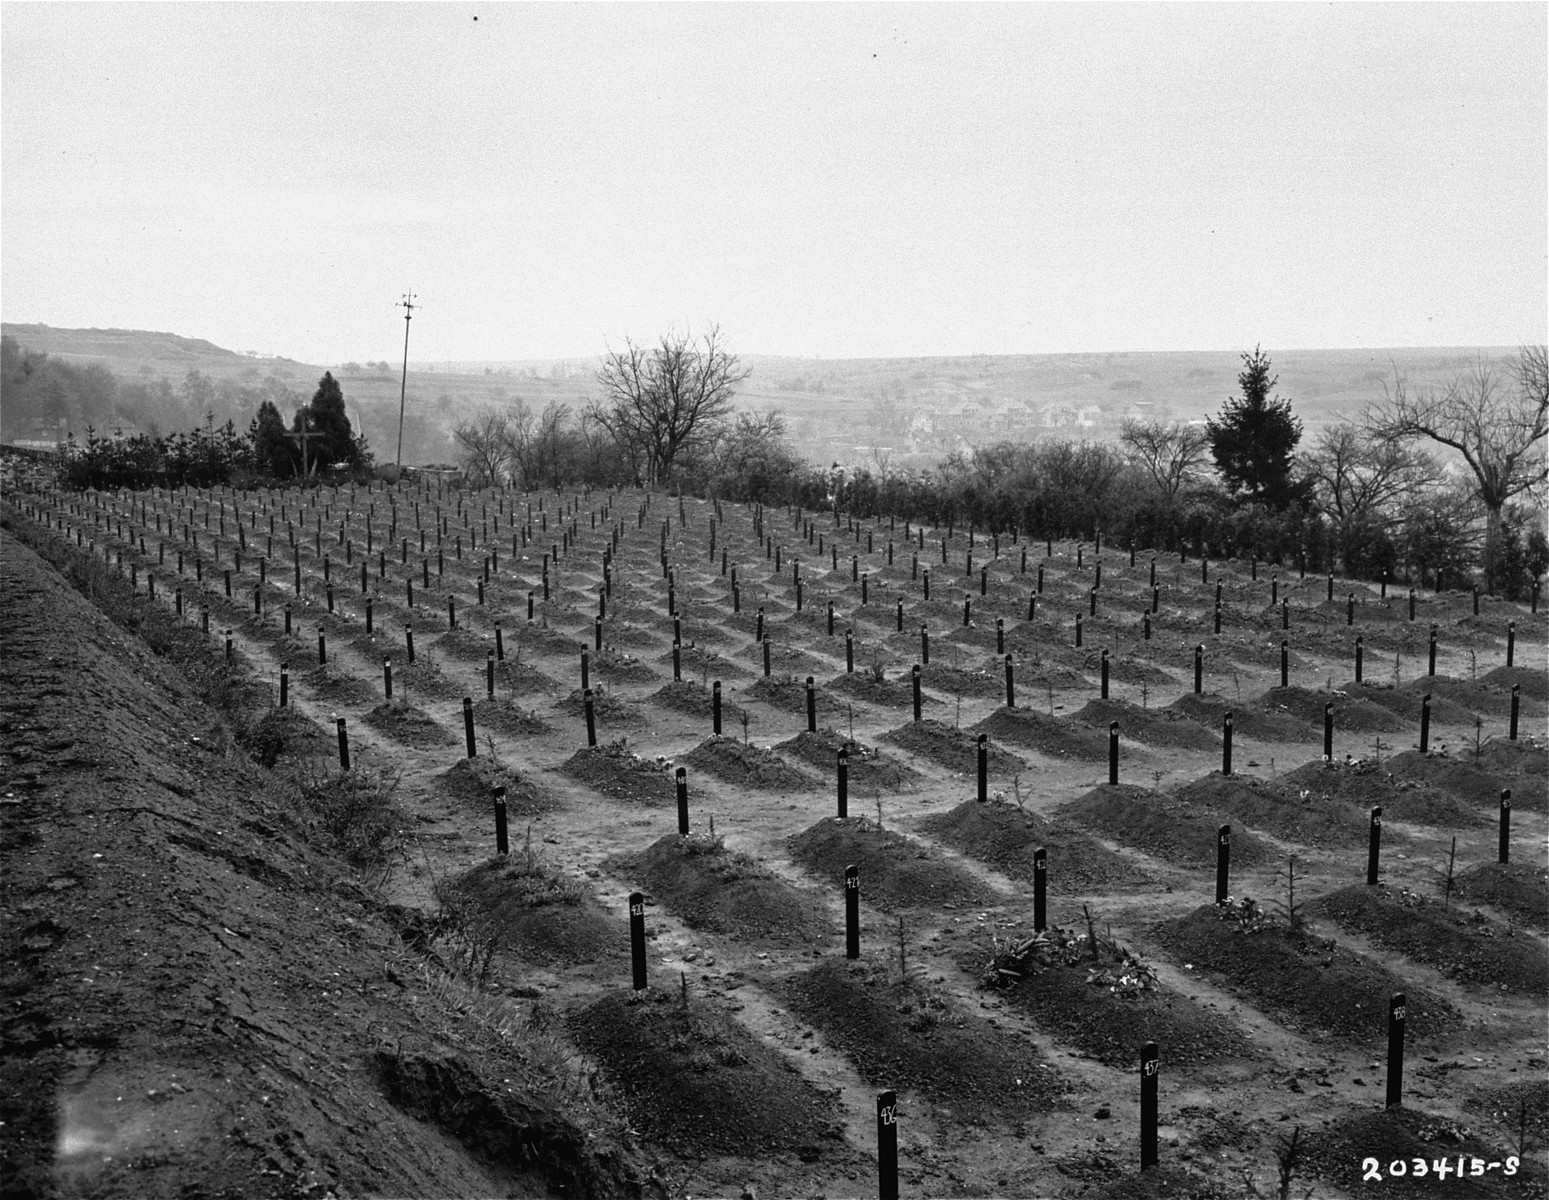 View of the cemetery at the Hadamar Institute, where victims of the Nazi euthanasia program were buried in mass graves.  The photograph was taken by an American military photographer soon after the liberation.